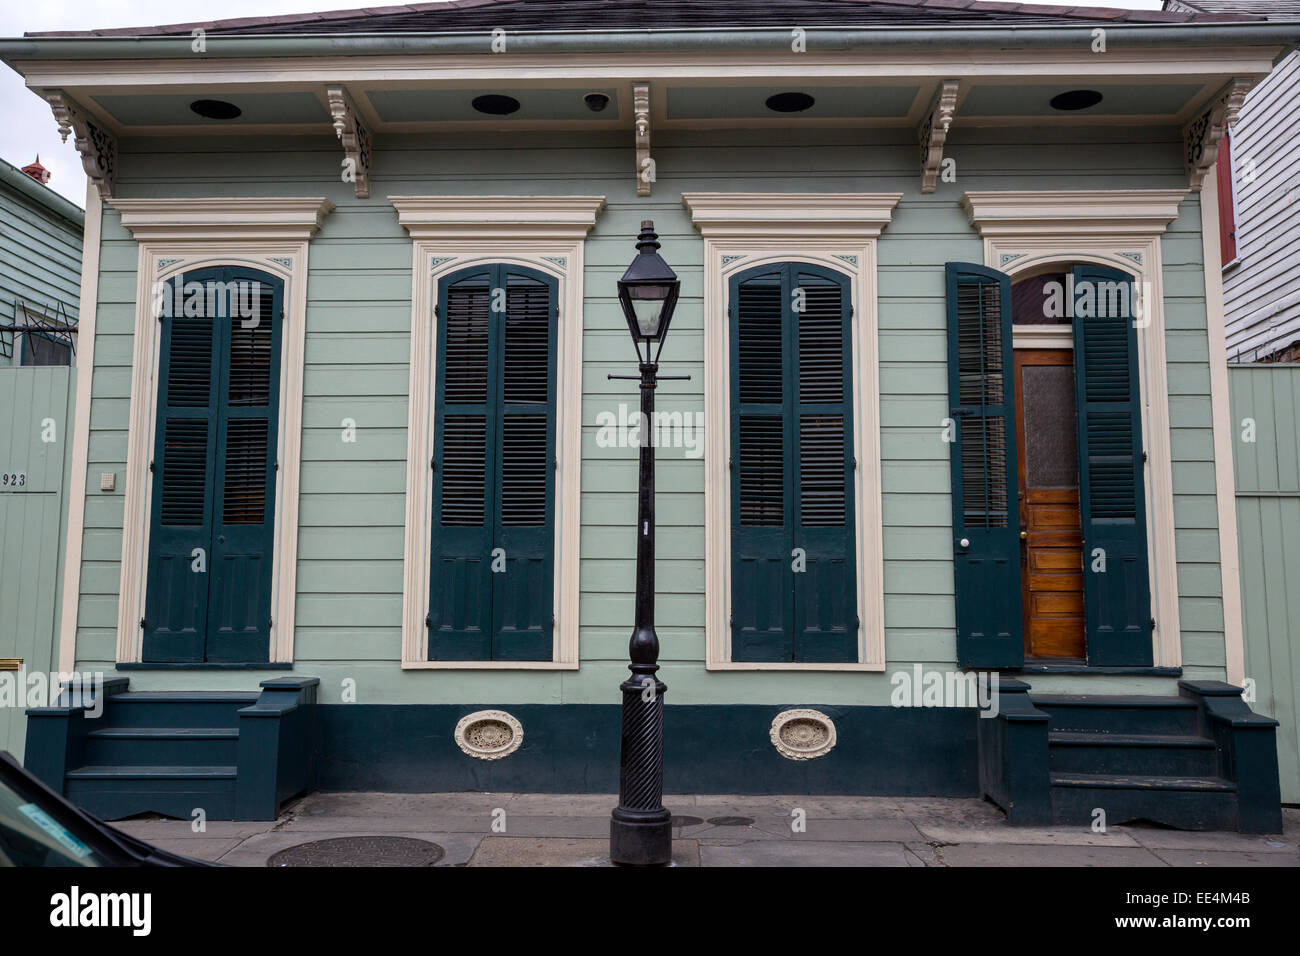 French Quarter, New Orleans, Louisiana.  A Double Shotgun House with Pair of Windows Flanked by Entrance Doors. - Stock Image